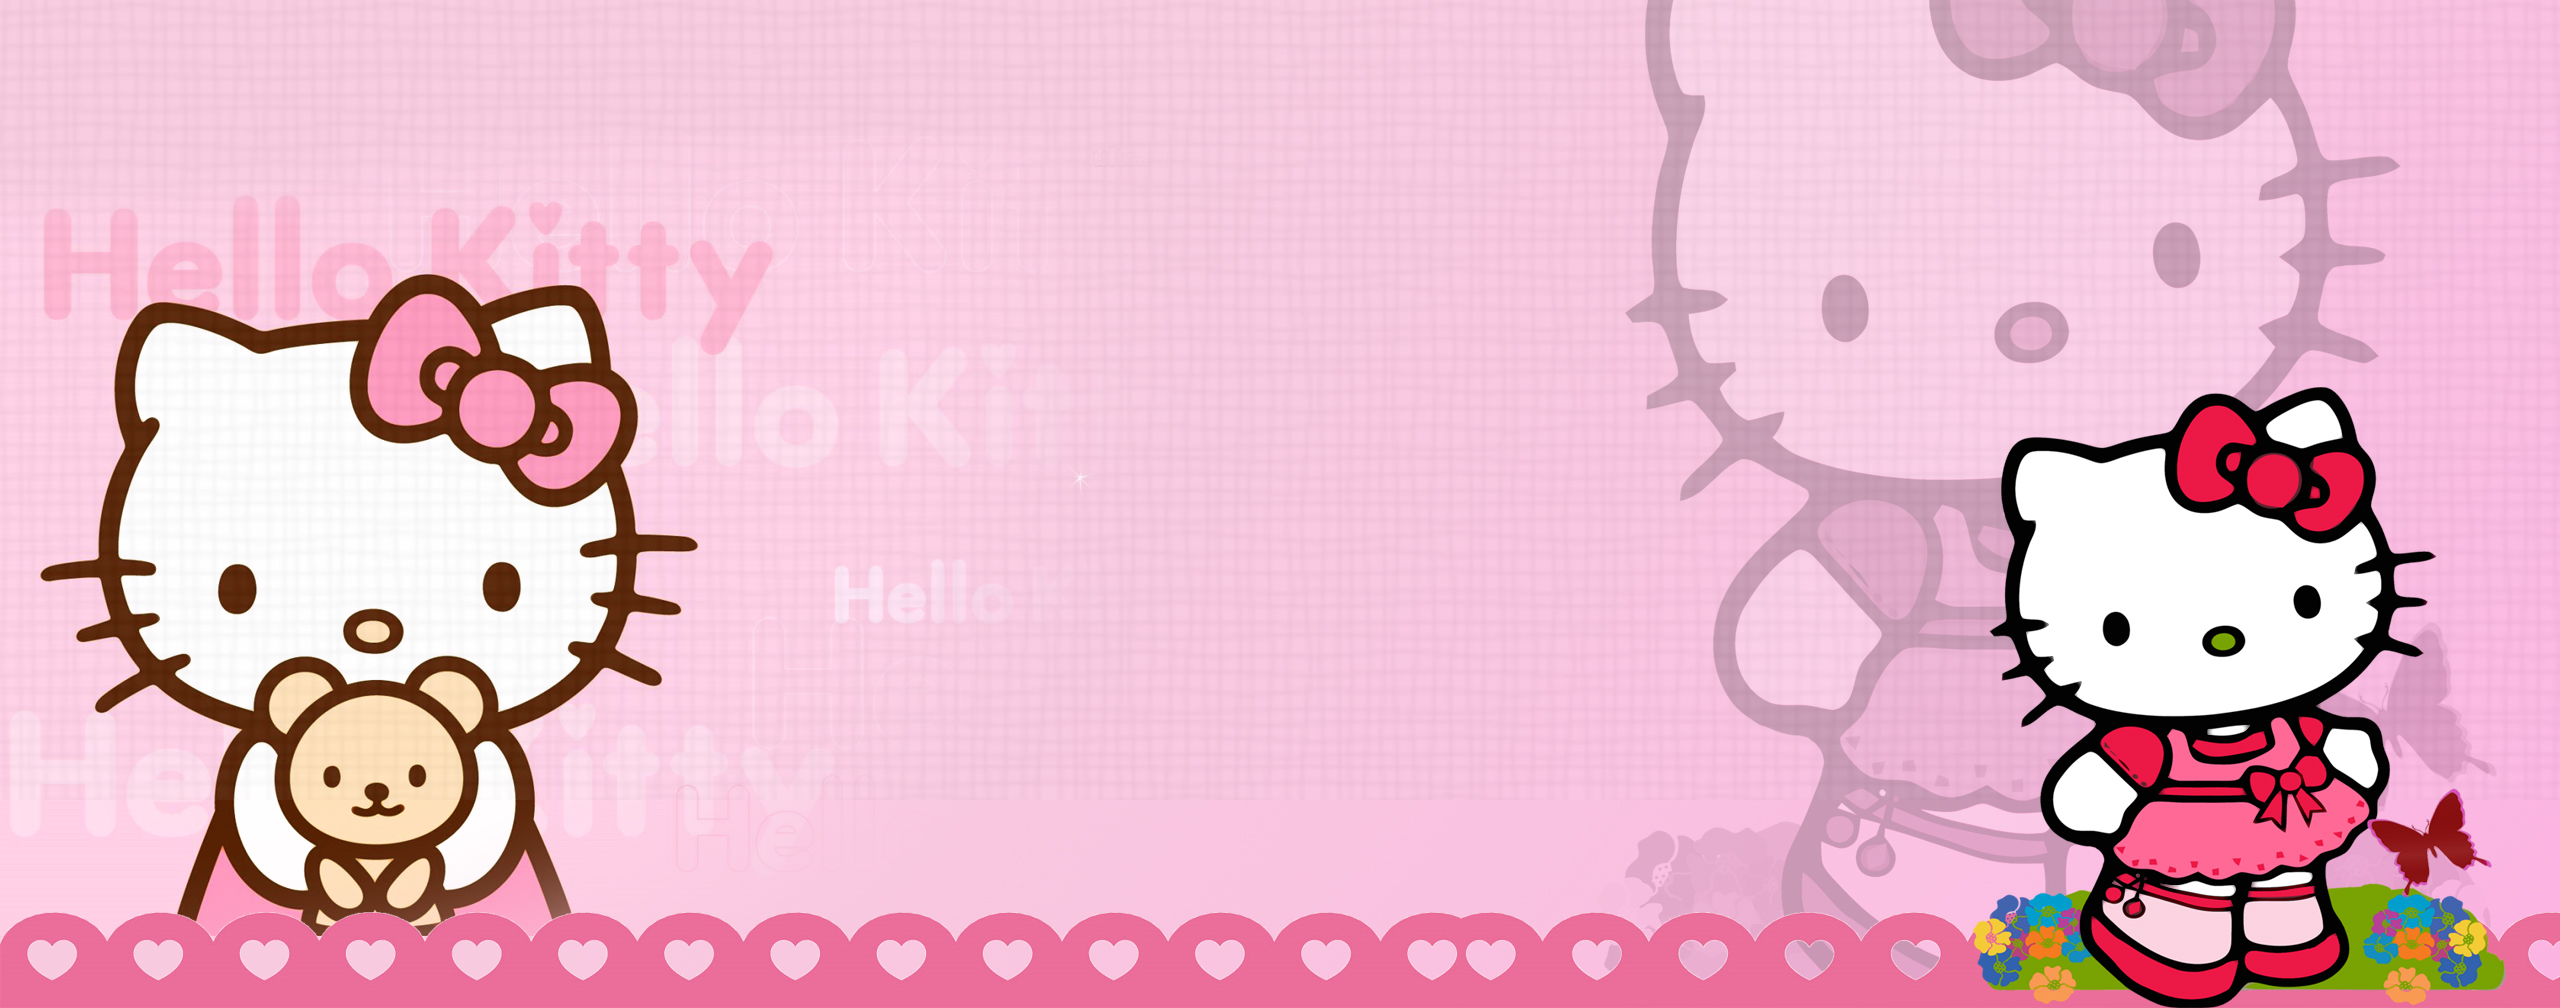 Amazing Wallpaper Hello Kitty Ice Cream - Wallpaper-Hello-Kitty-010  You Should Have_115418.jpg